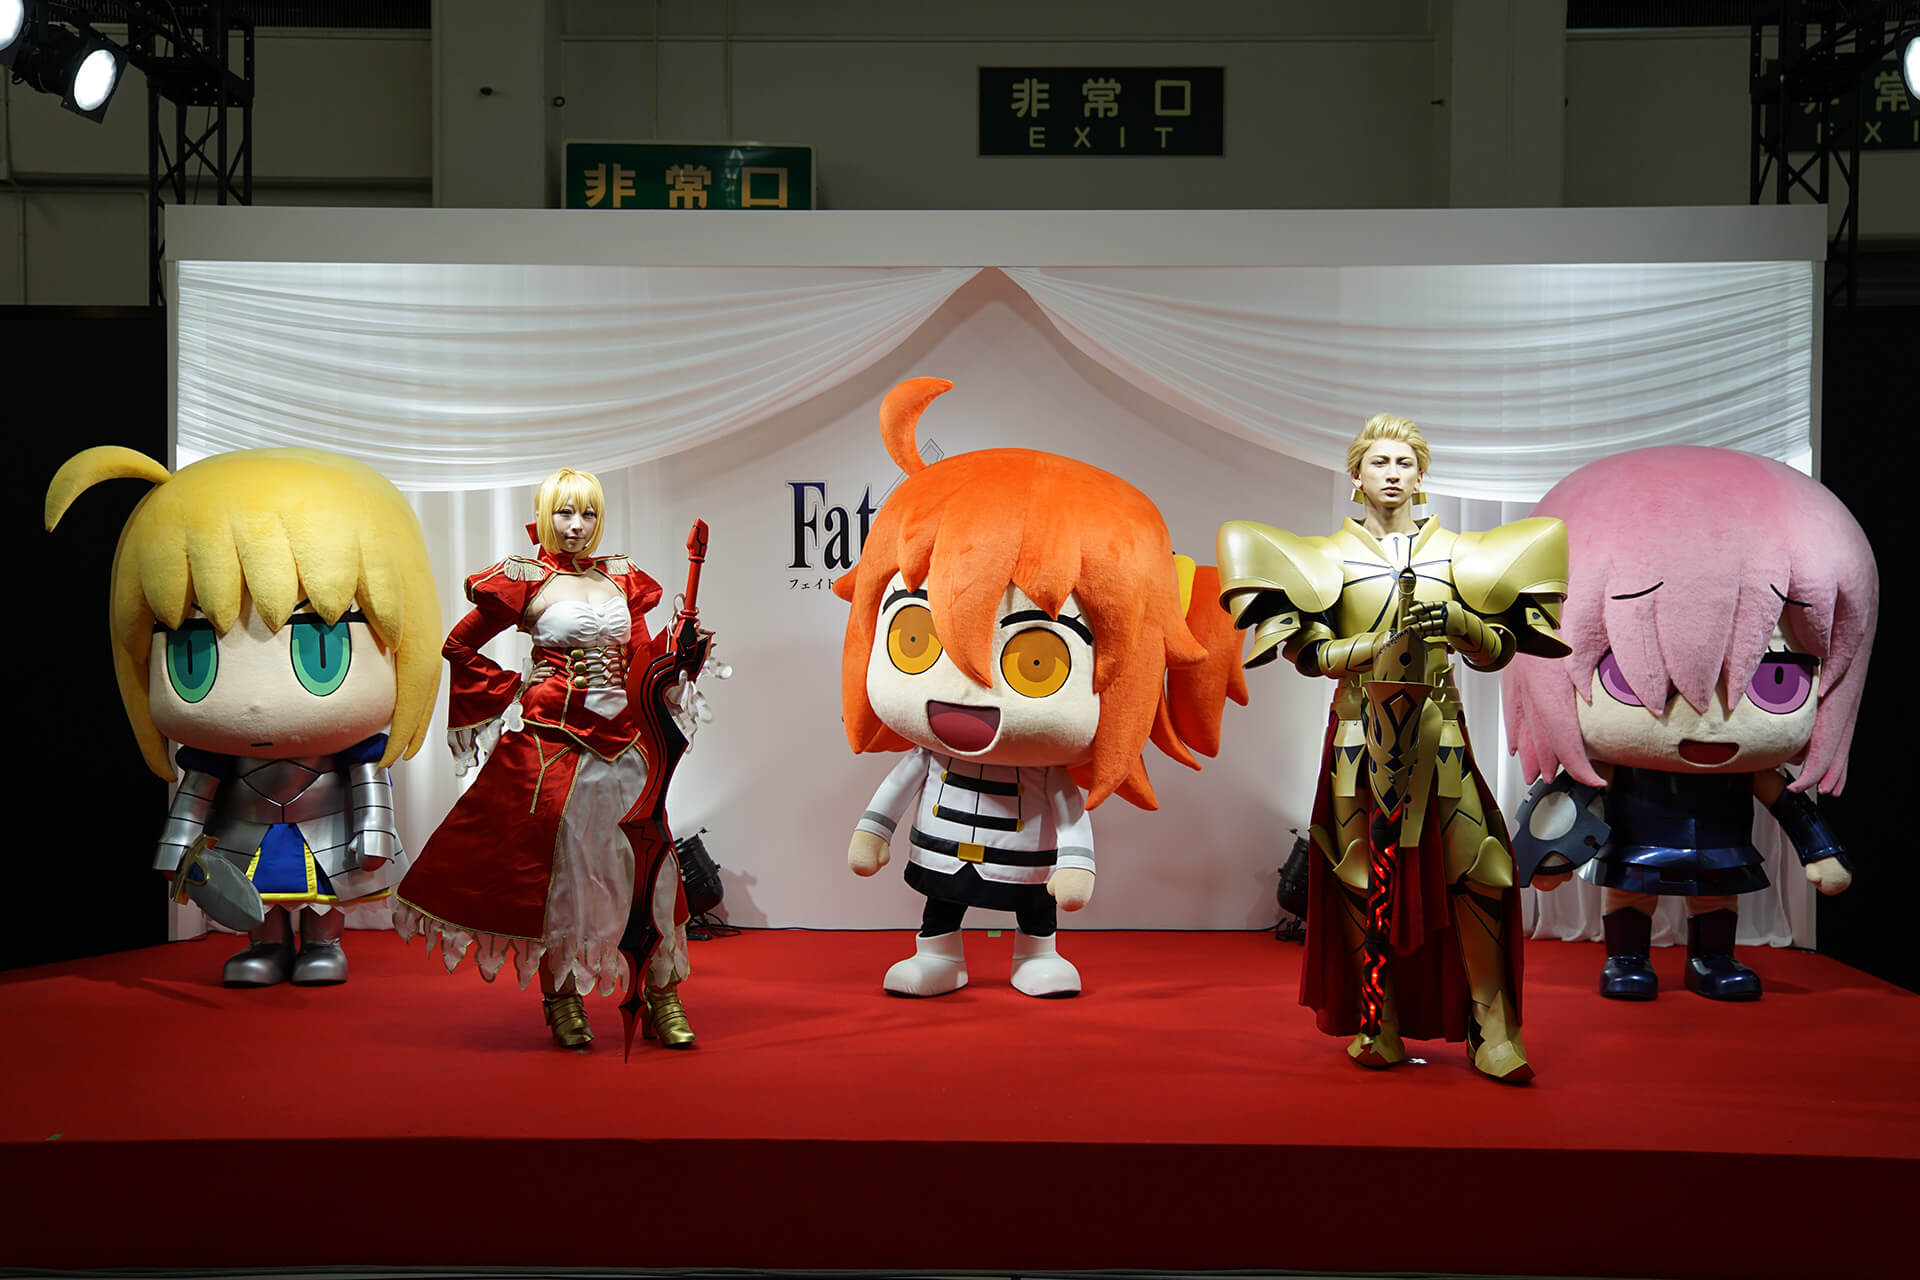 [Event] Fate/Grand Order Winter Festival 2018 Hiroshima Event Report